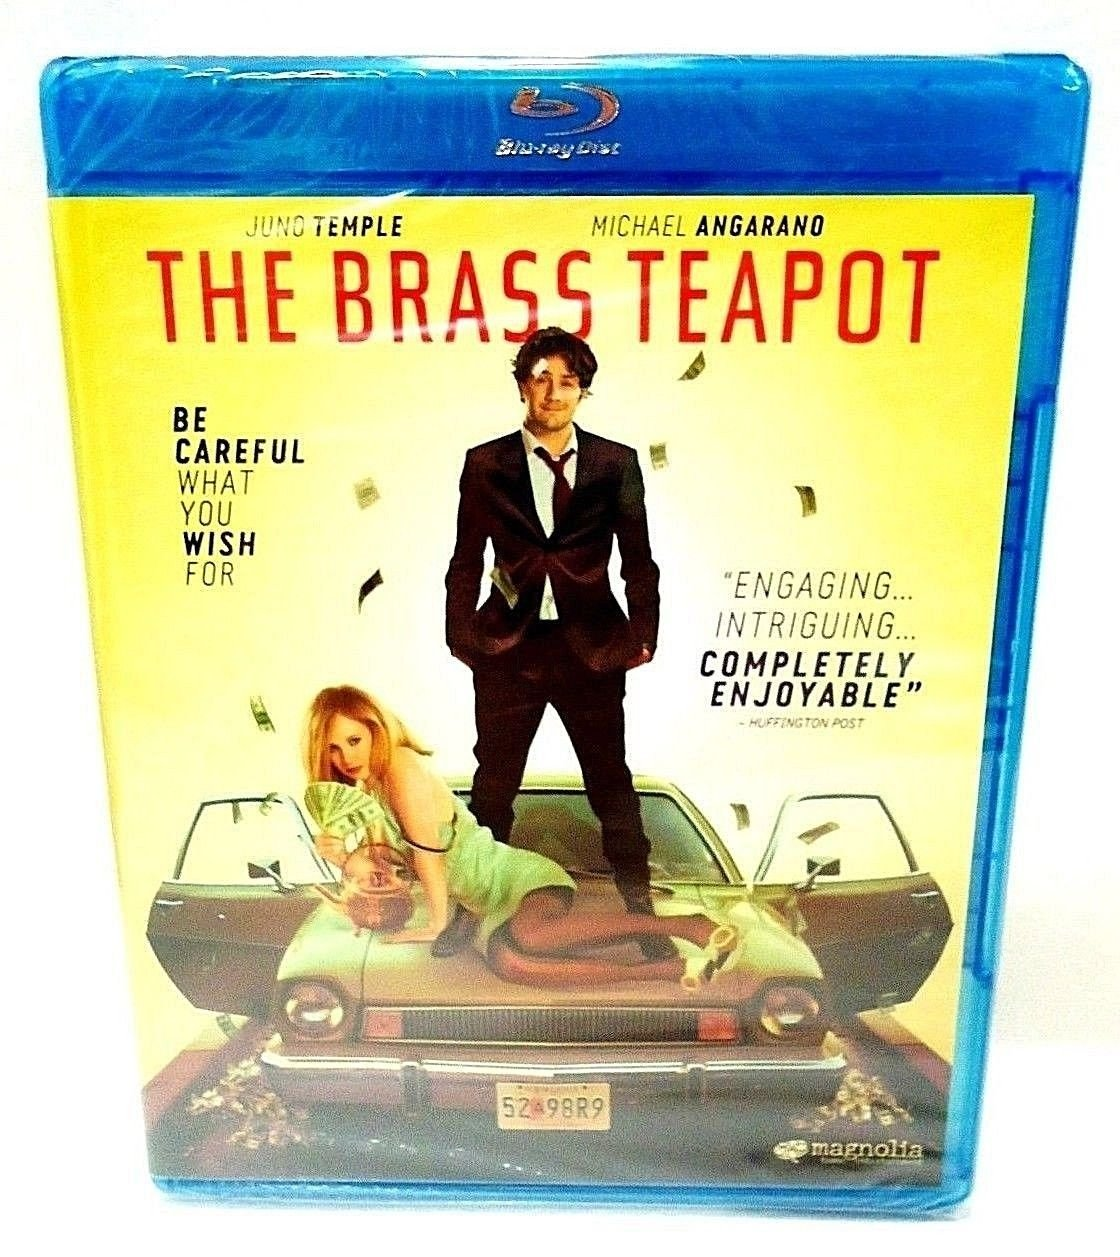 THE BRASS TEAPOT - BLU-RAY - DVD - JUNO TEMPLE - BRAND NEW - COMEDY - MOVIE